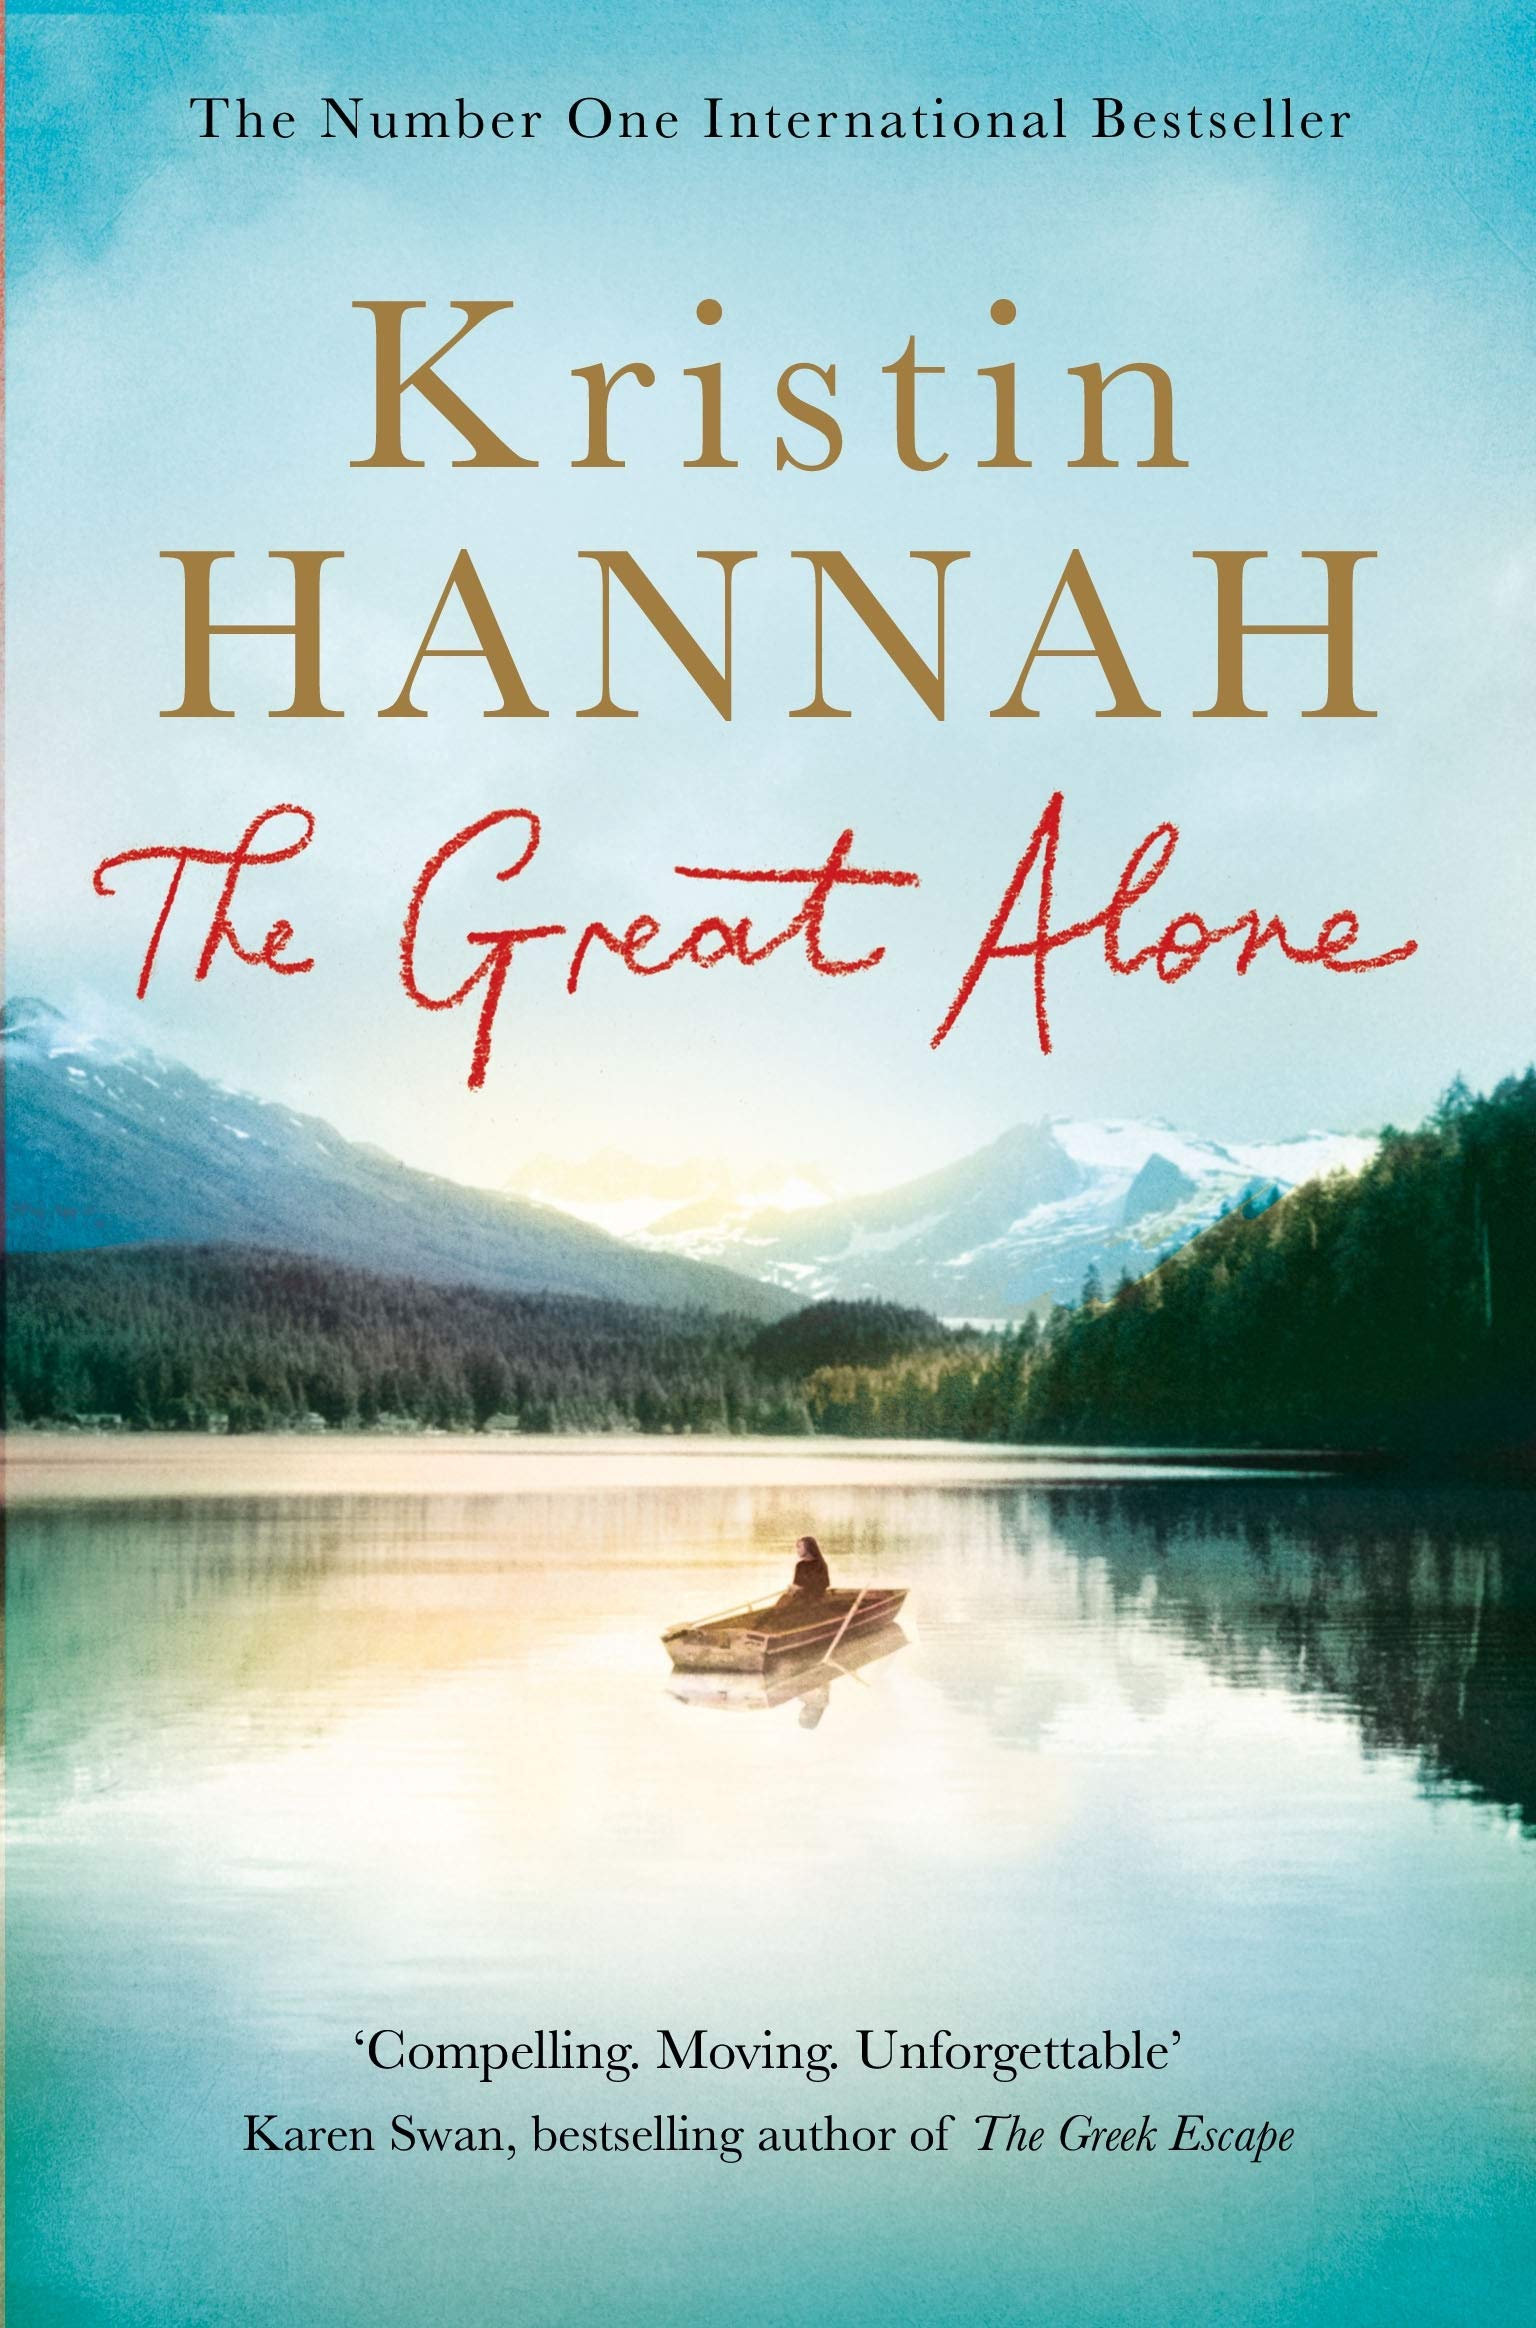 Alternative cover for 'The Great Alone' by Kristin Hannah